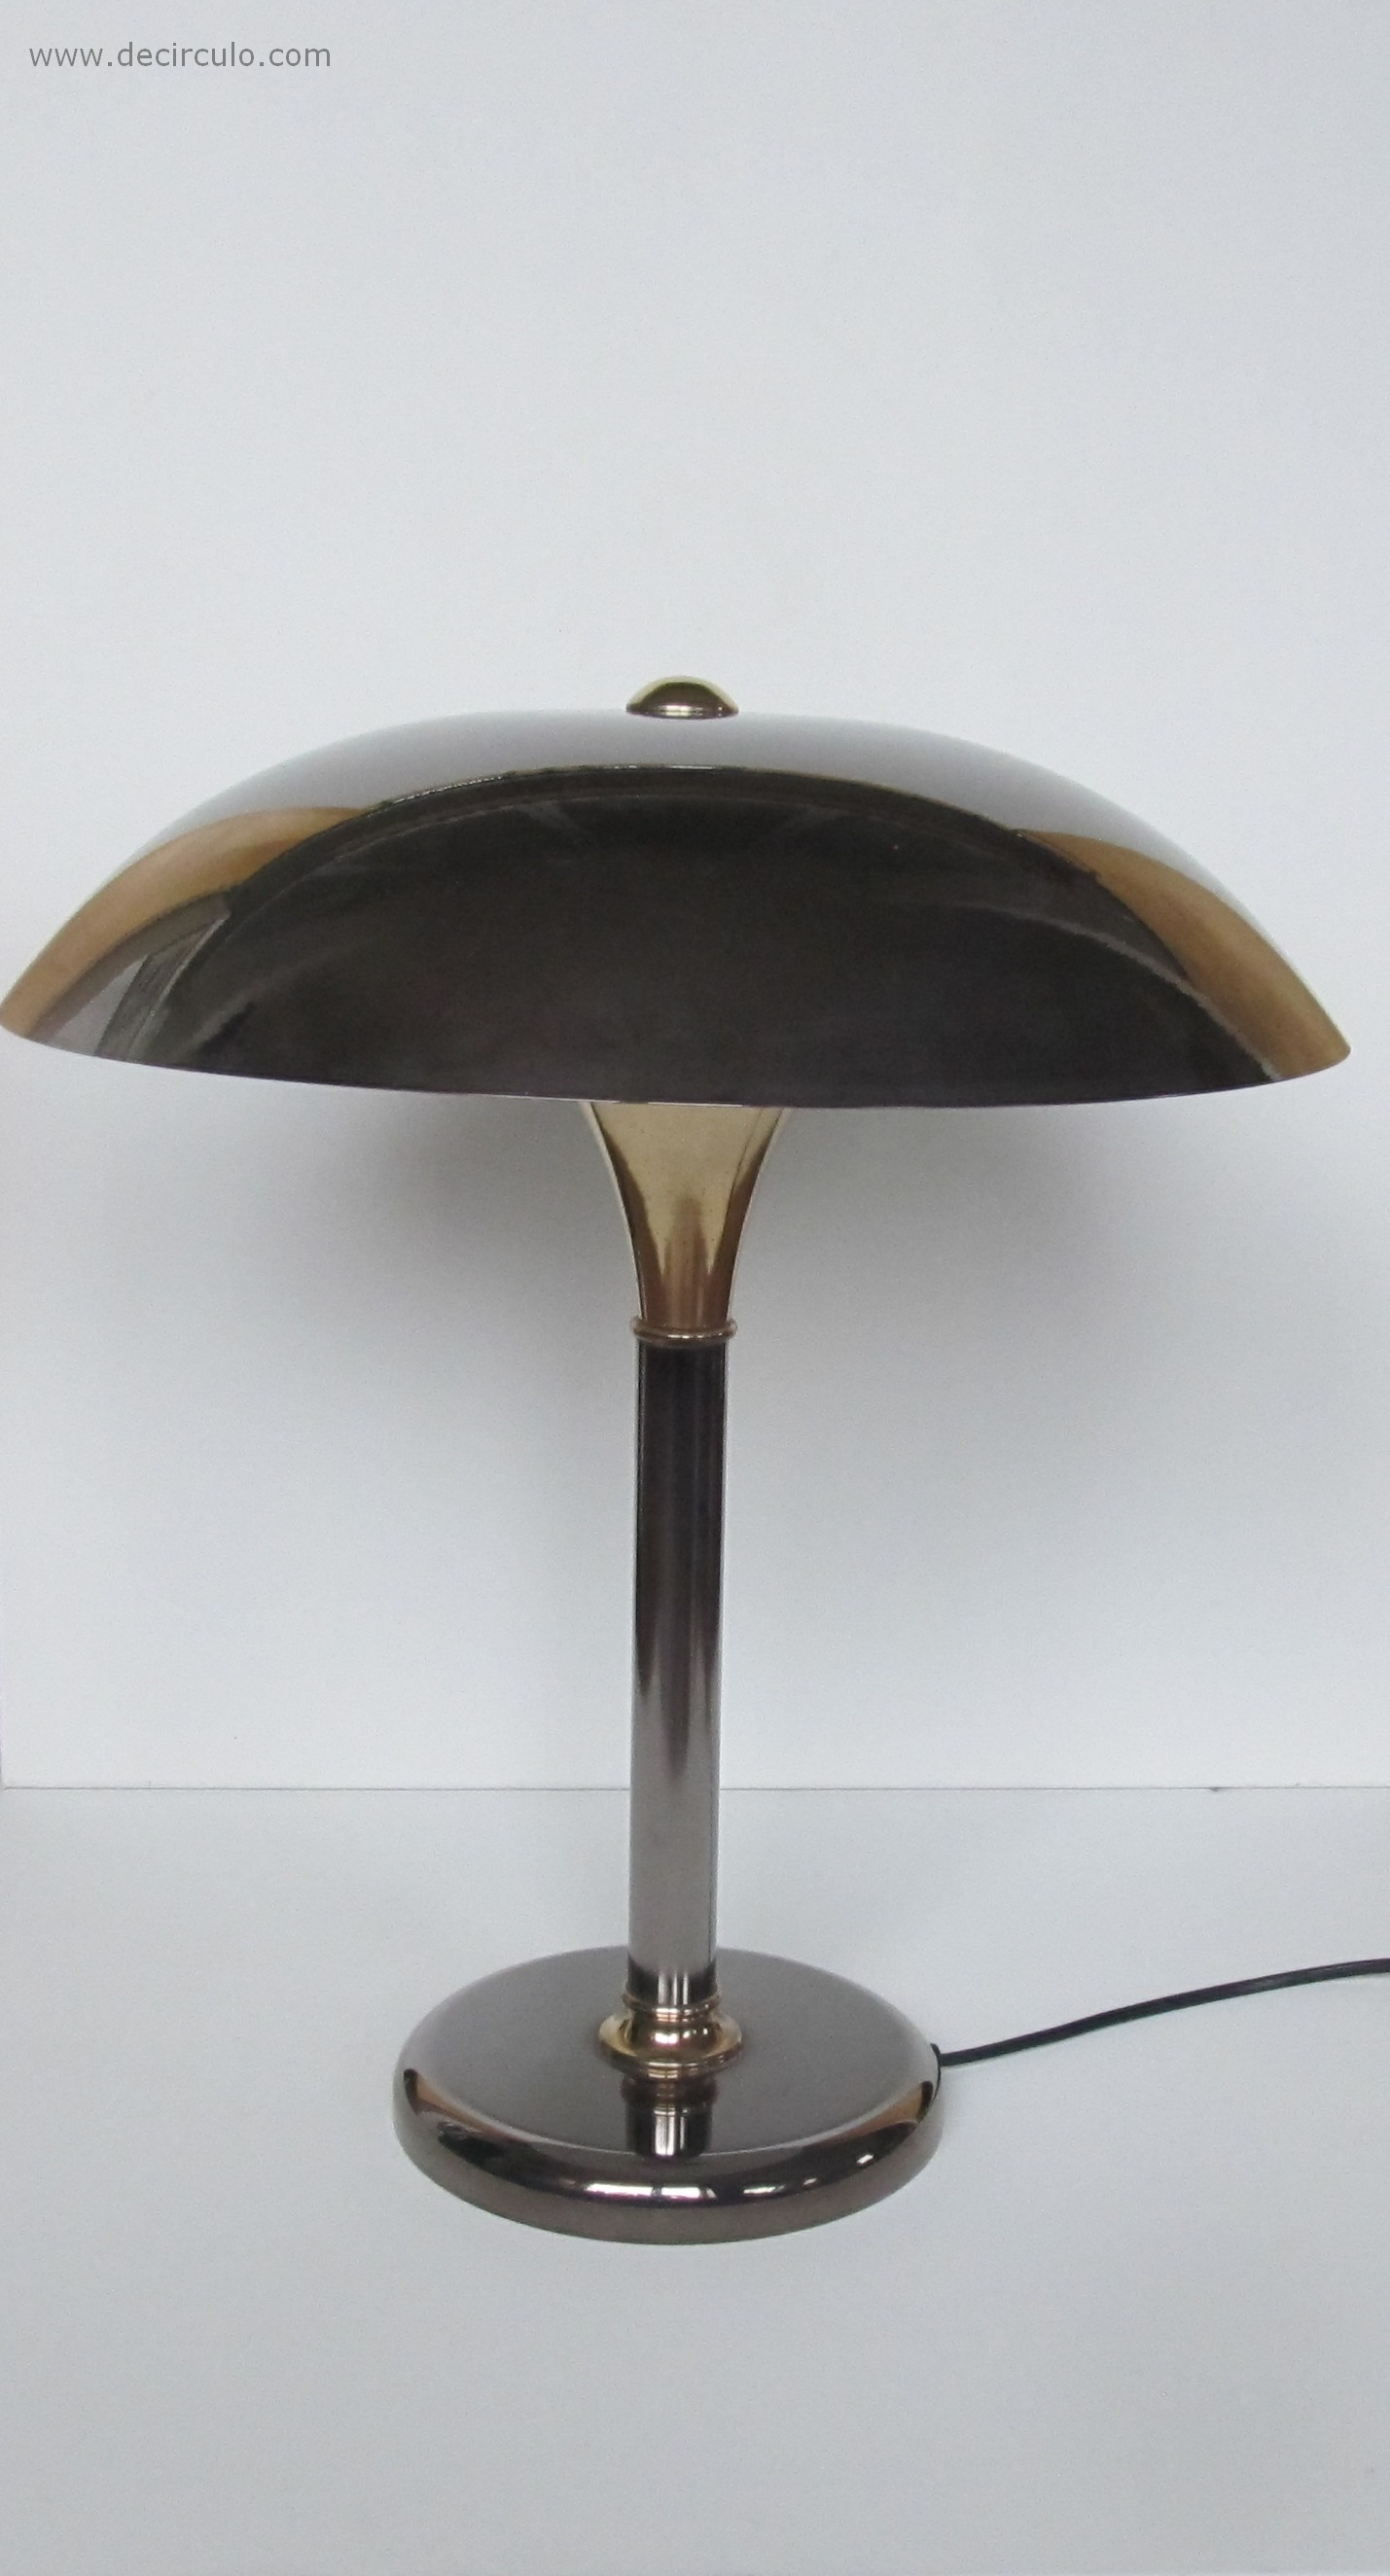 Art Deco Desklamp